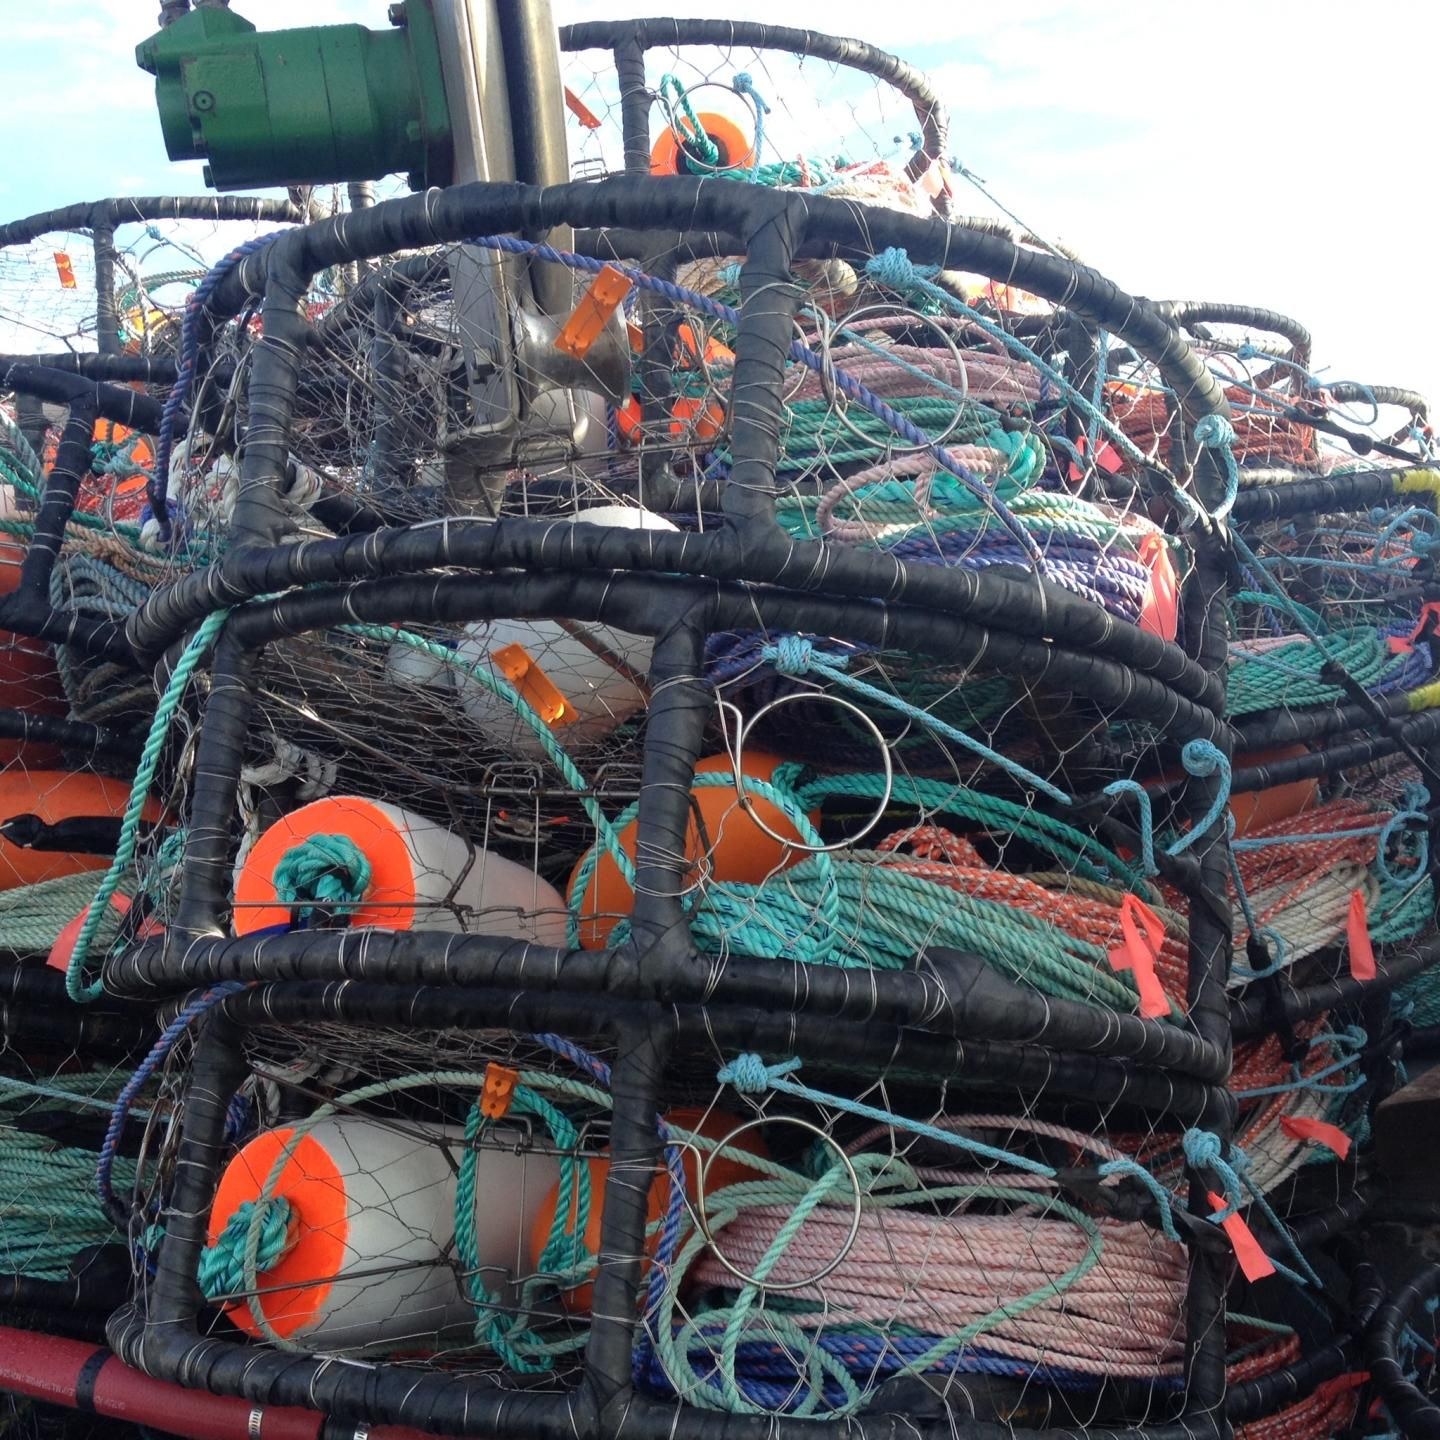 Commercial Dungeness Crab Fishing On The West Coast Is One Of The Highest Risk Occupations In The United States Based On Fata Dungeness Crab Crab Fishing Crab